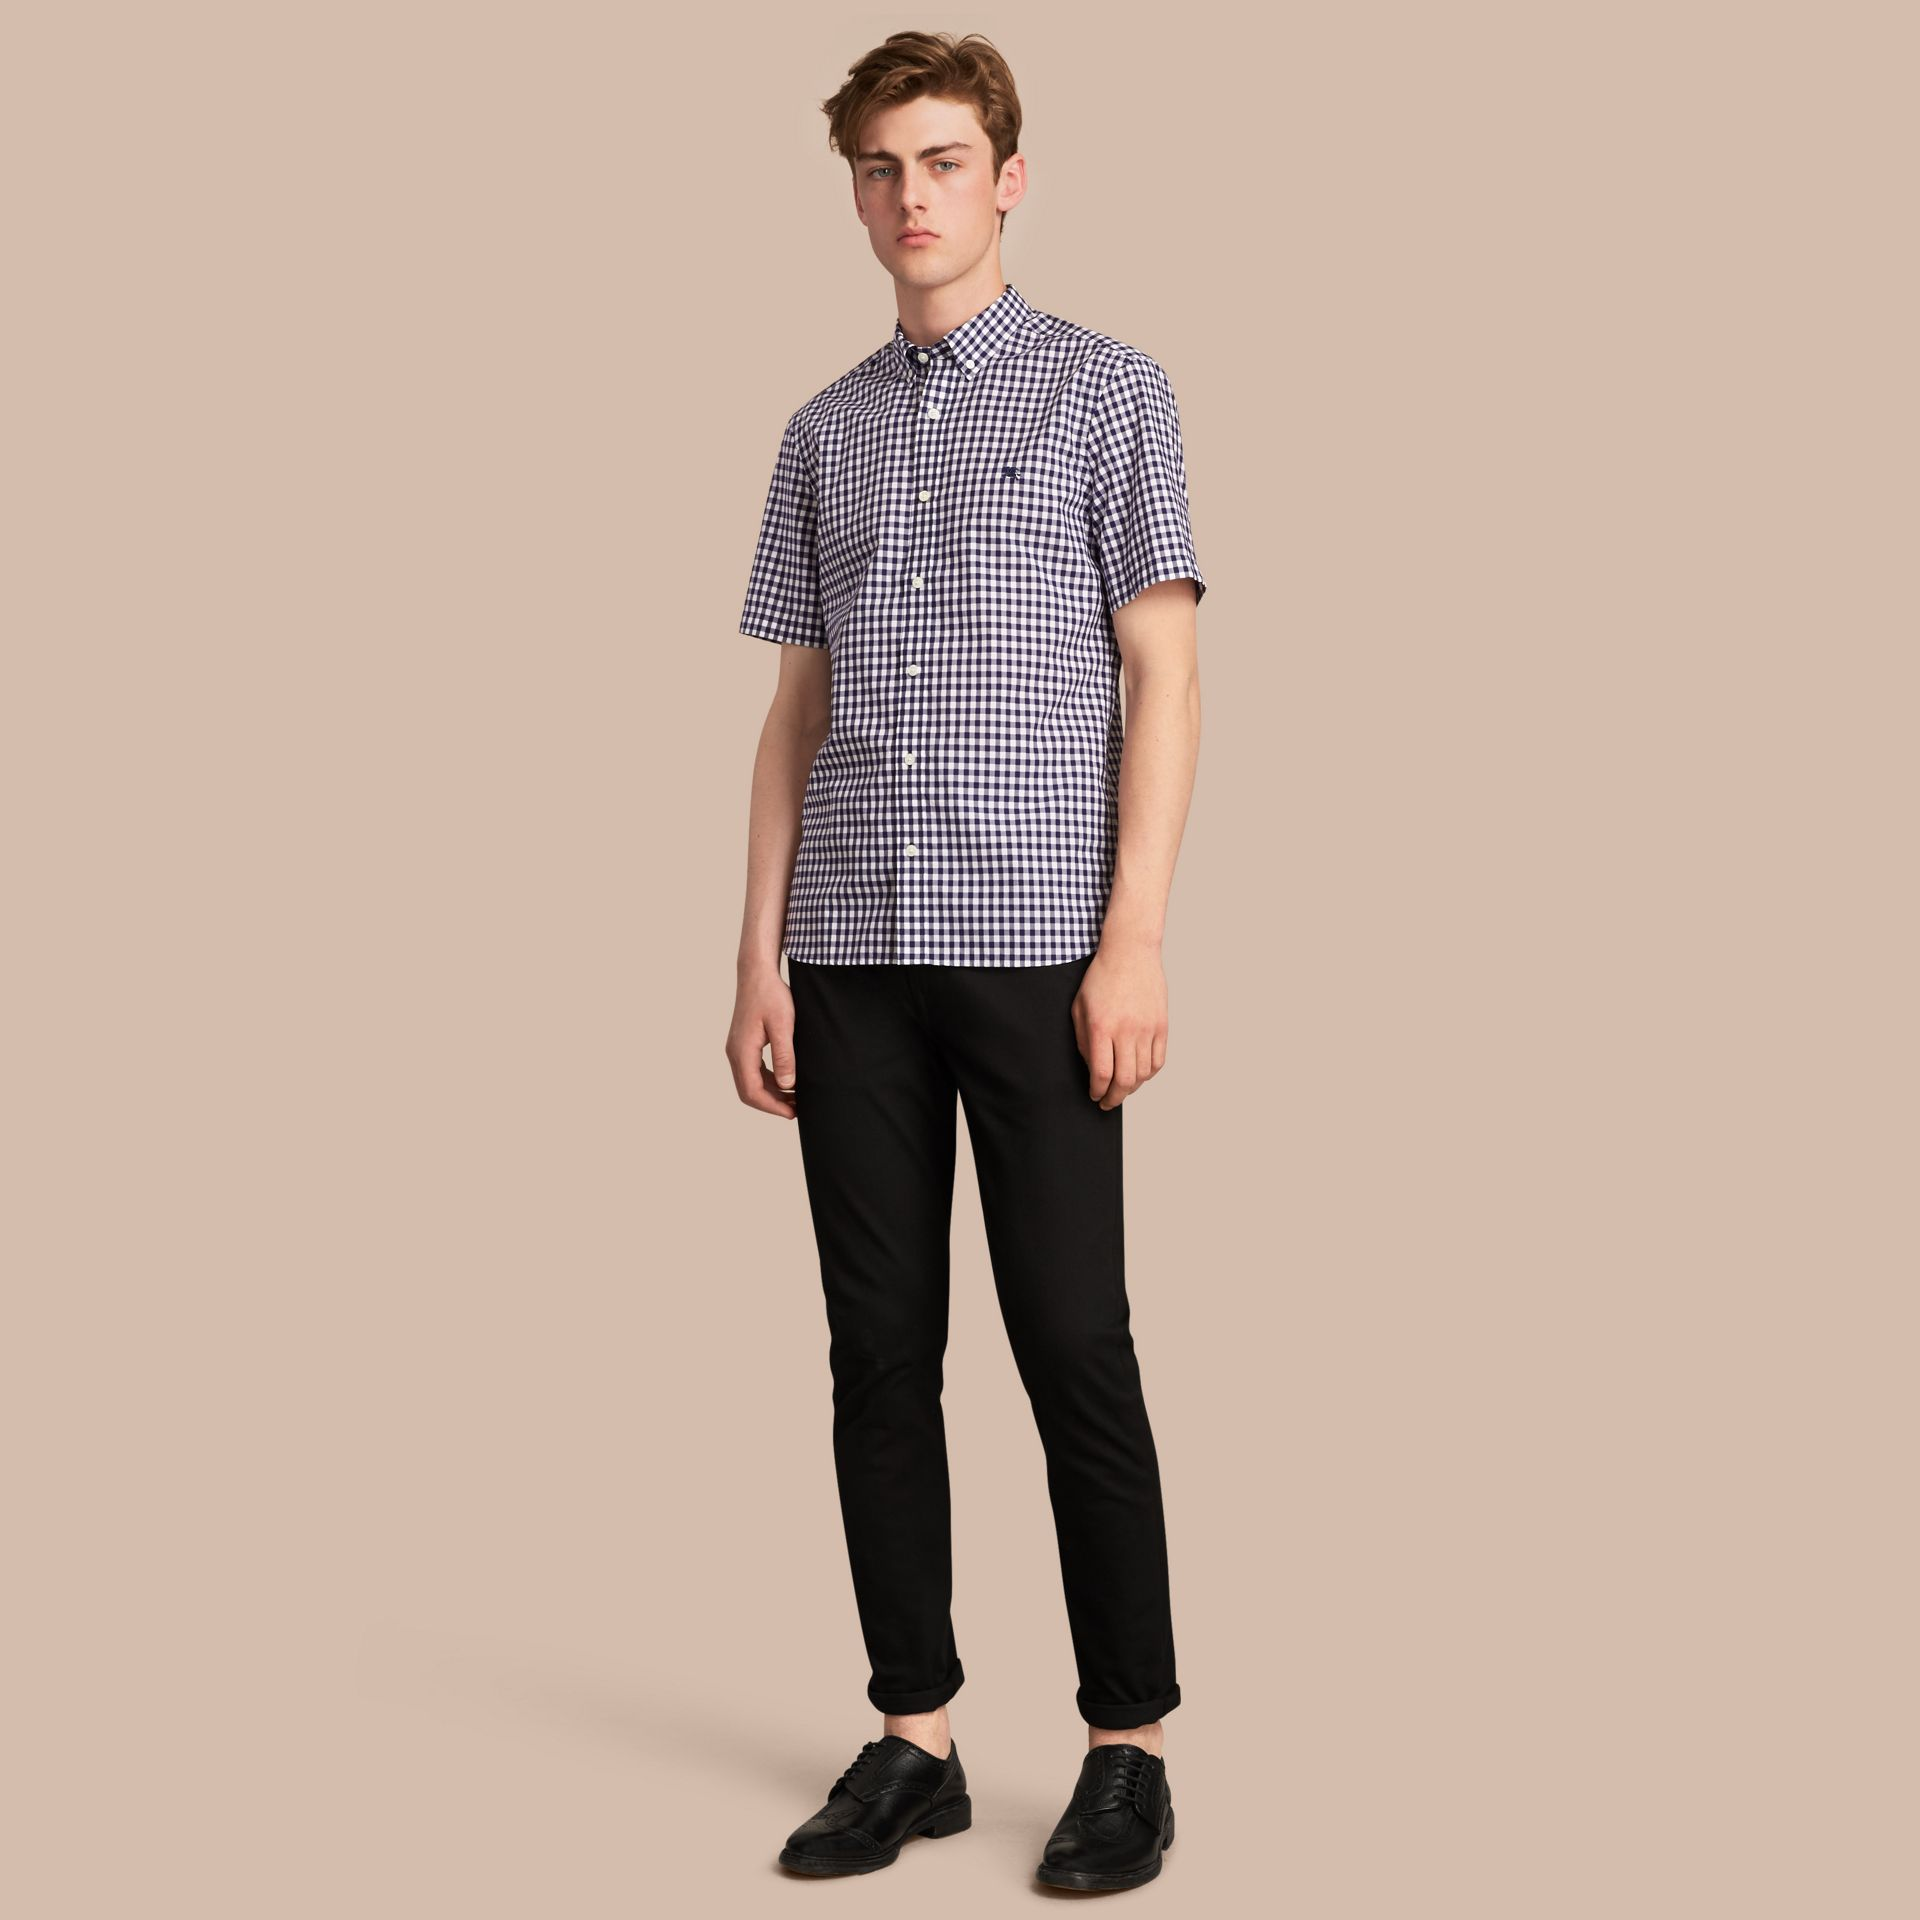 Short-sleeve Button-down Collar Cotton Gingham Shirt in Navy - Men | Burberry Canada - gallery image 1